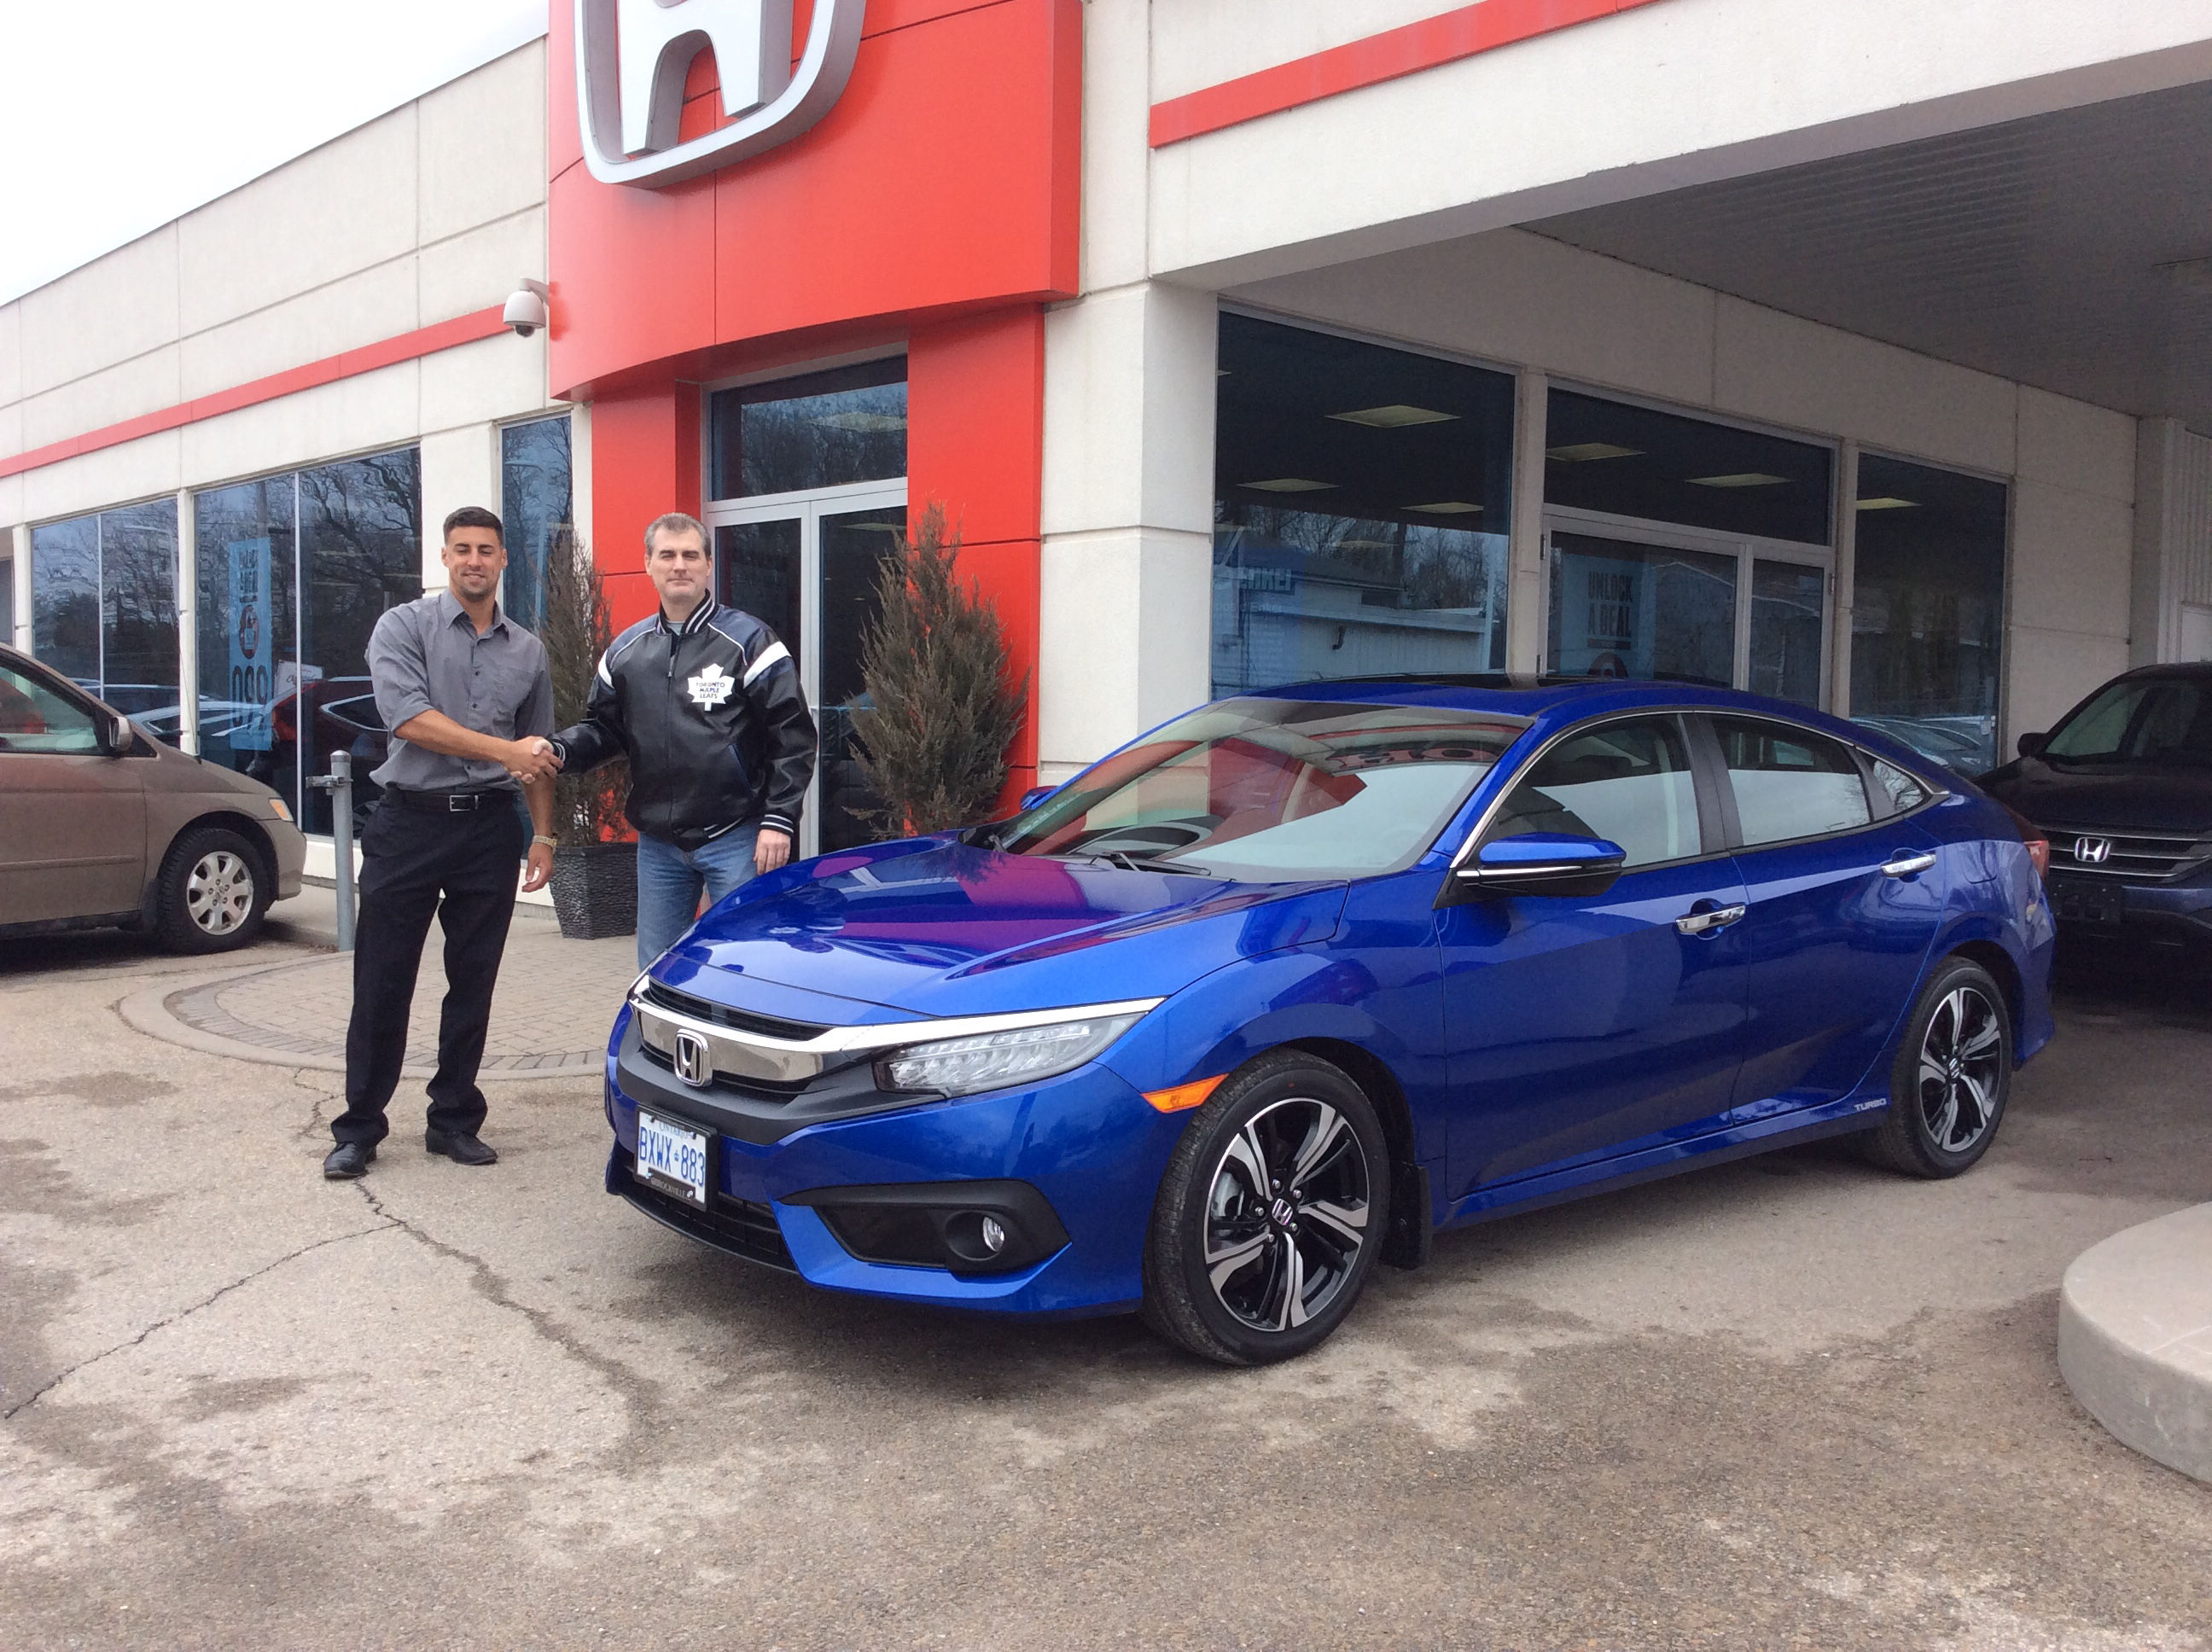 First 2016 Civic Touring In Aegean Blue By Shawn Lawson